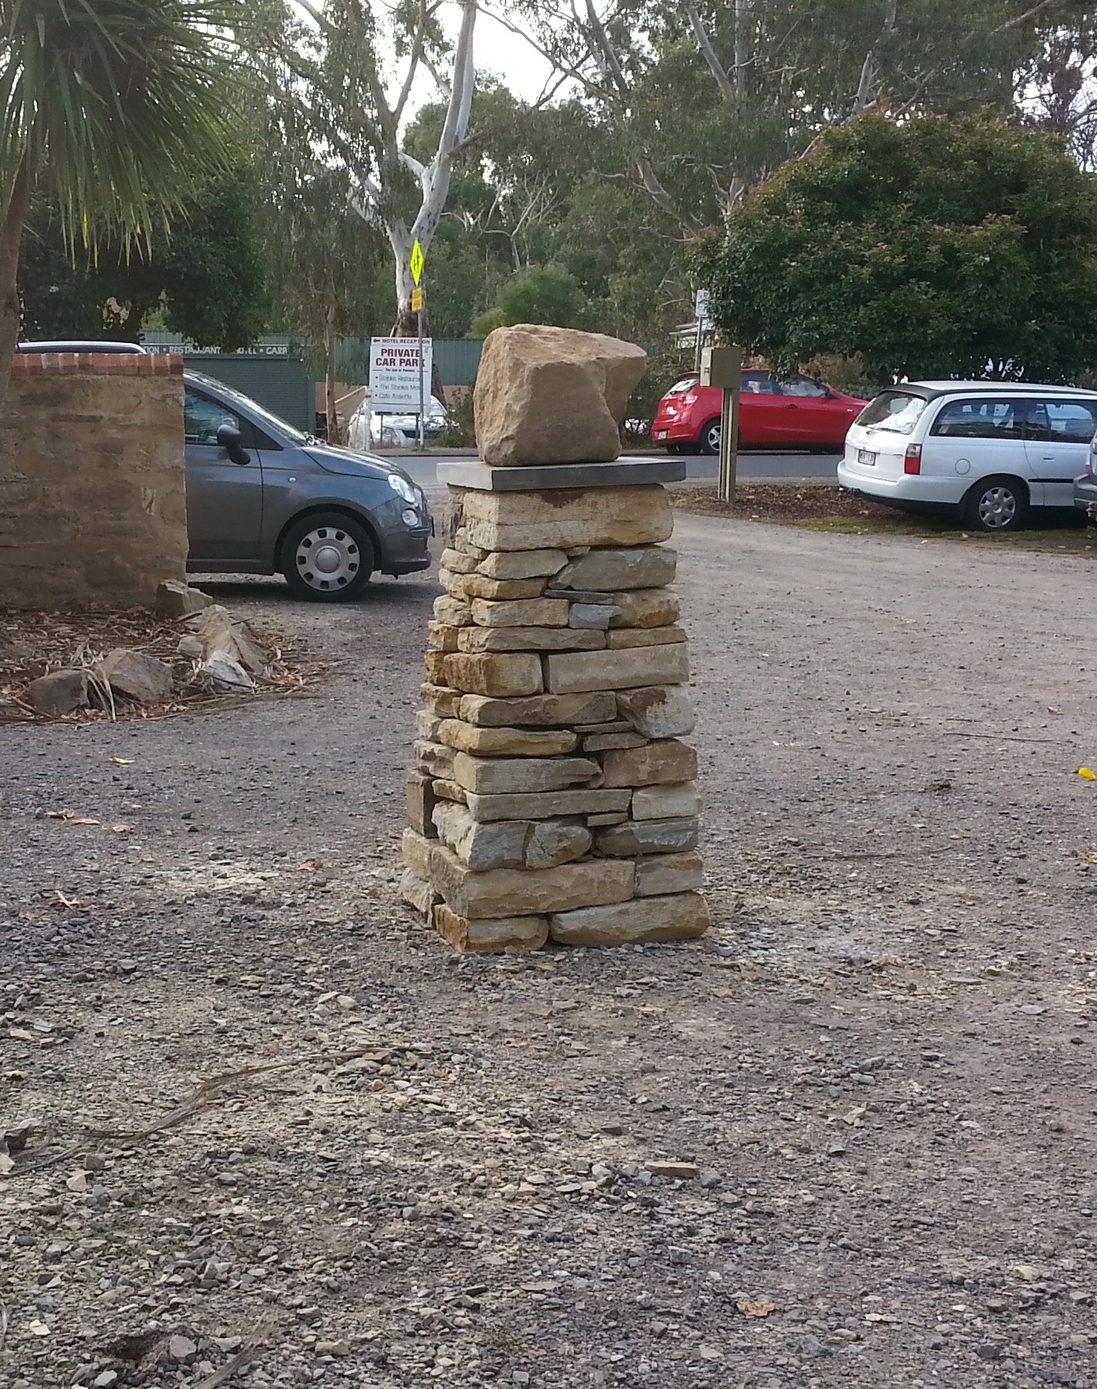 Dry stone cairn. Hahndorf, Adelaide Hills, South Australia